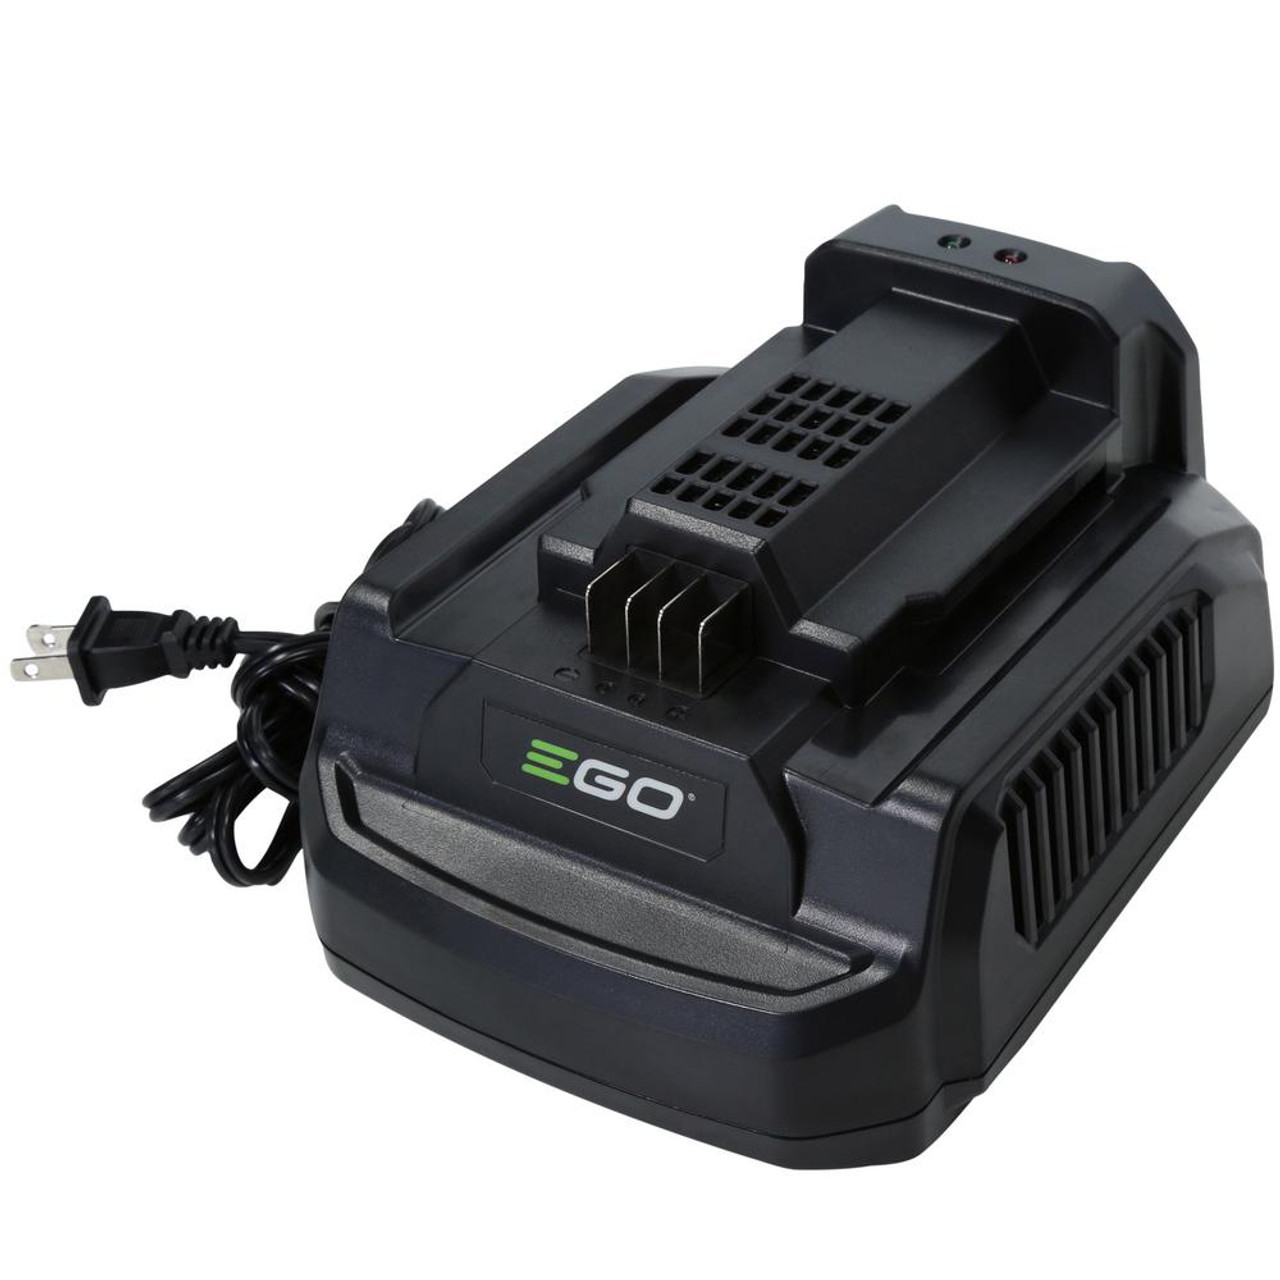 EGO LB5302 Electric, Cordless 56V 530 CFM Handheld Blower w/ 2.5Ah Battery & 210W Charger Image 3